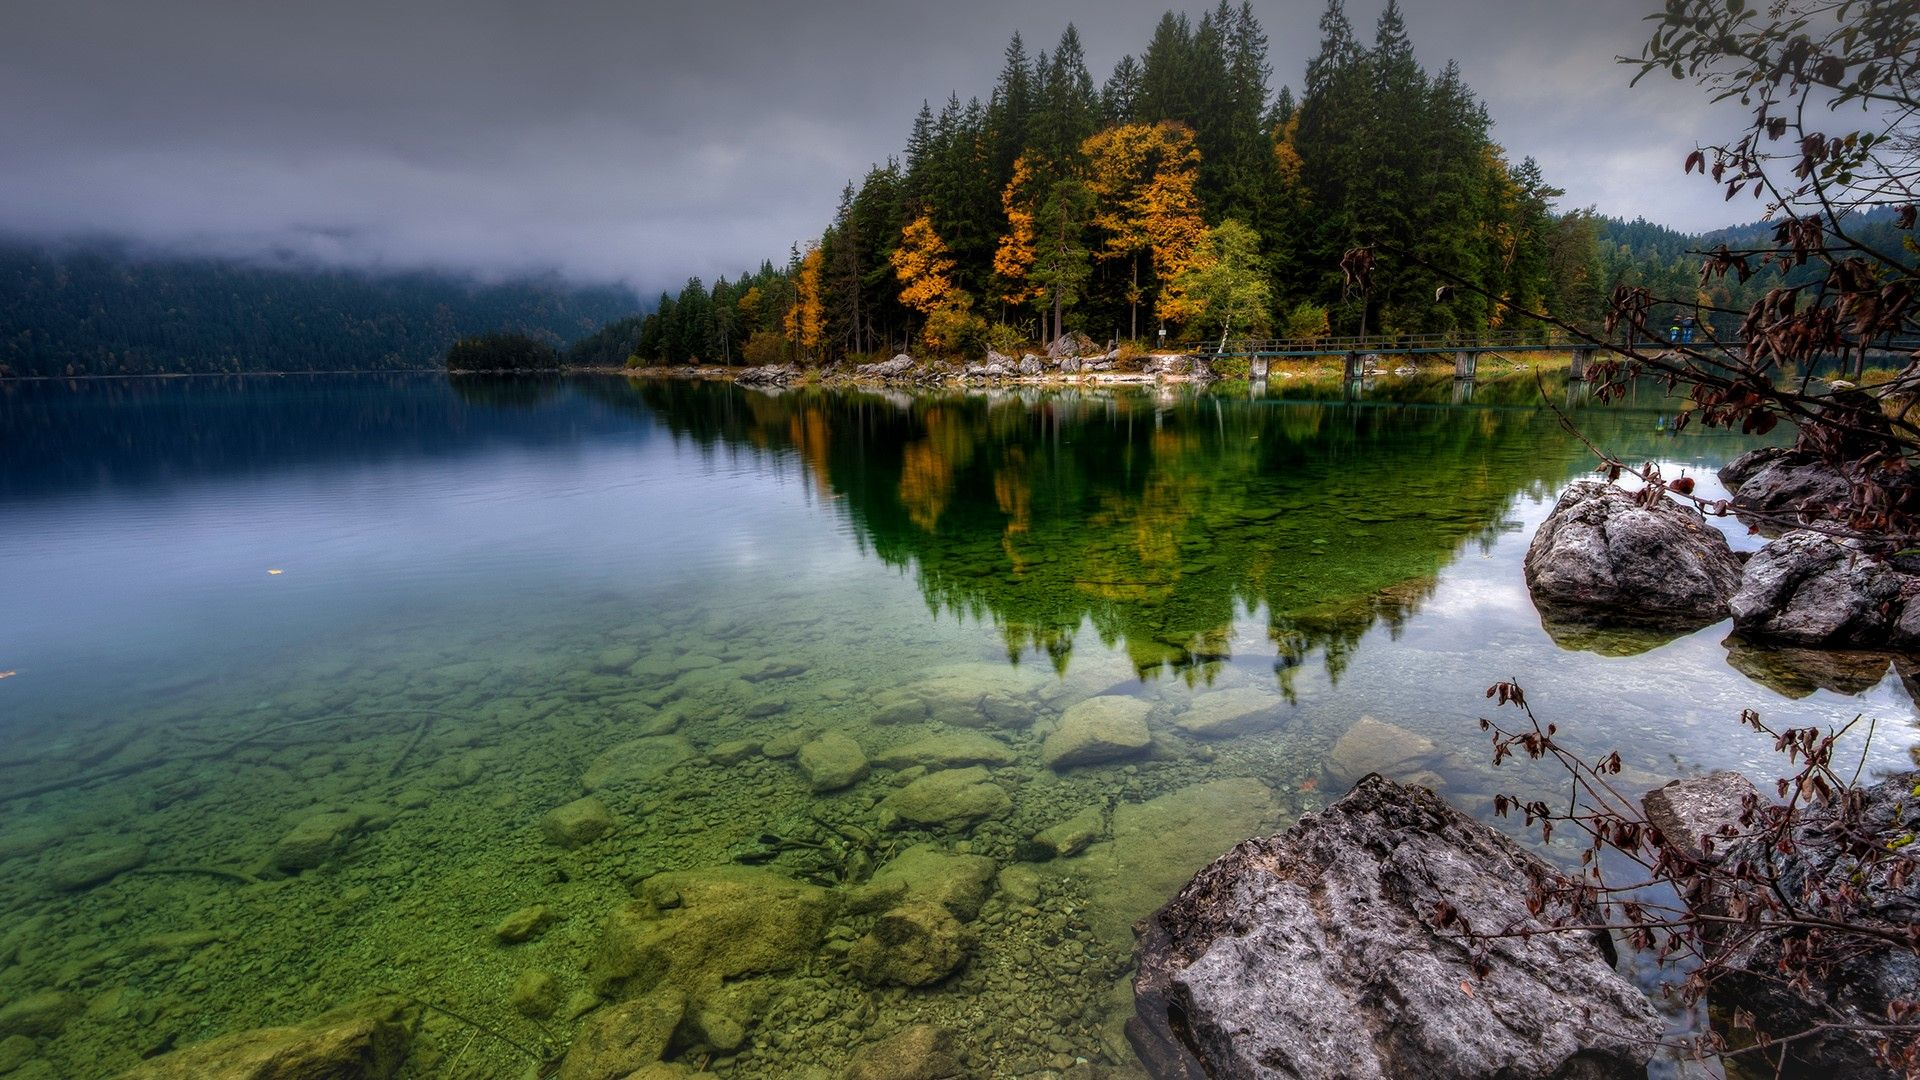 Eibsee Lake Collection See All Wallpapers Wallpapers Background Travel Lake Trip Nature Photos Forest Plants